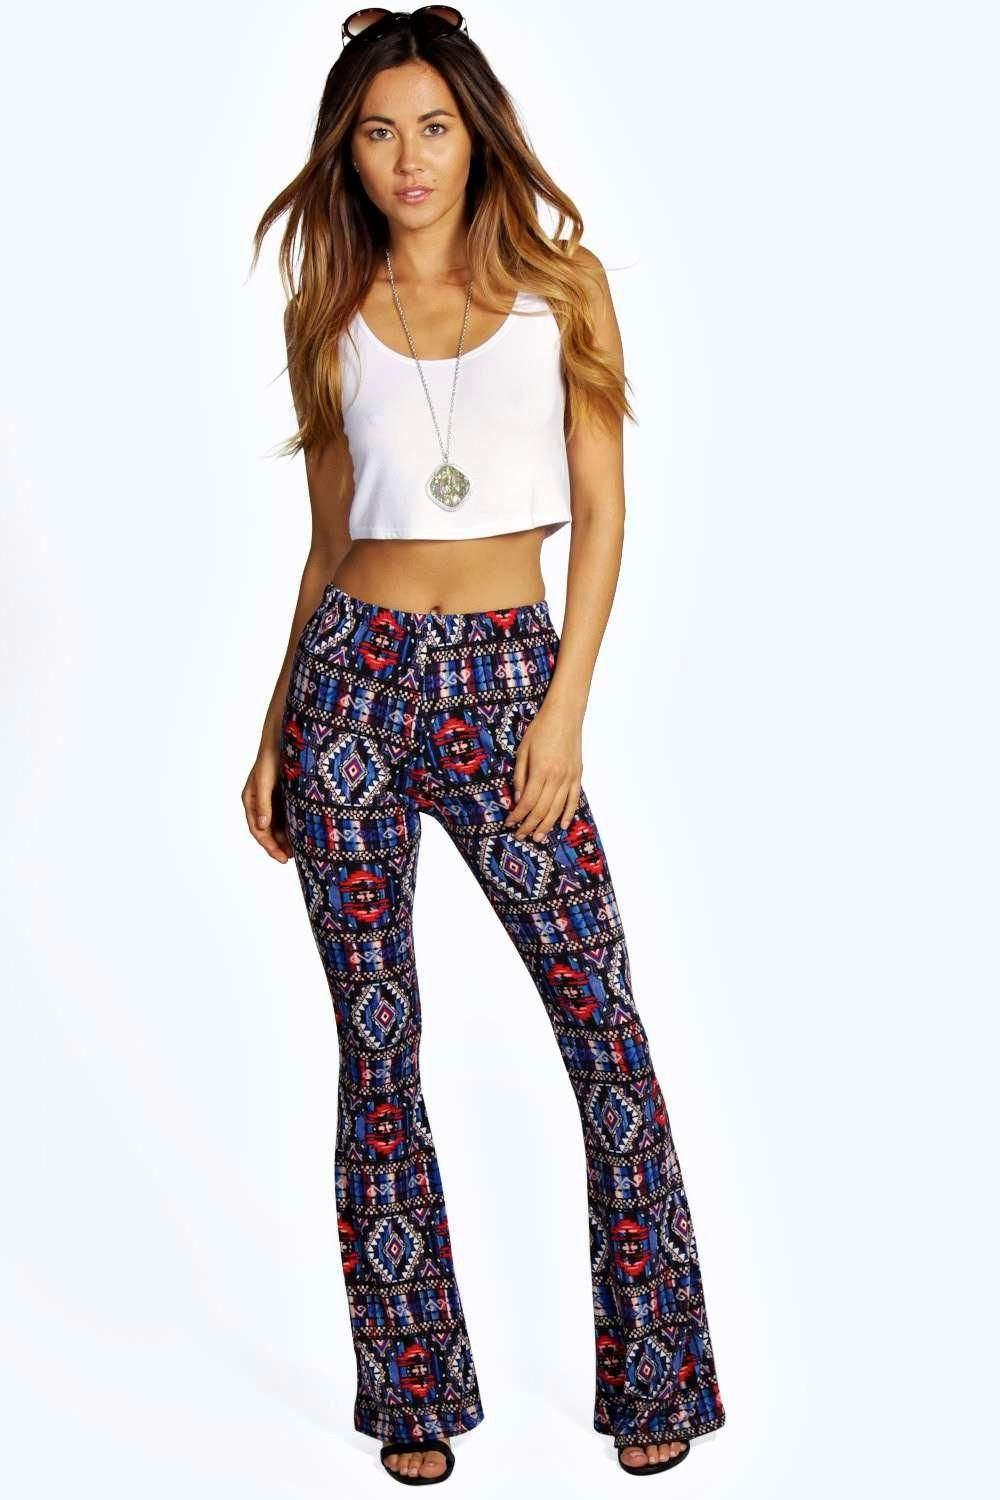 Annamarie Aztec Print Skinny Flares - not sure about these, but flares suit me